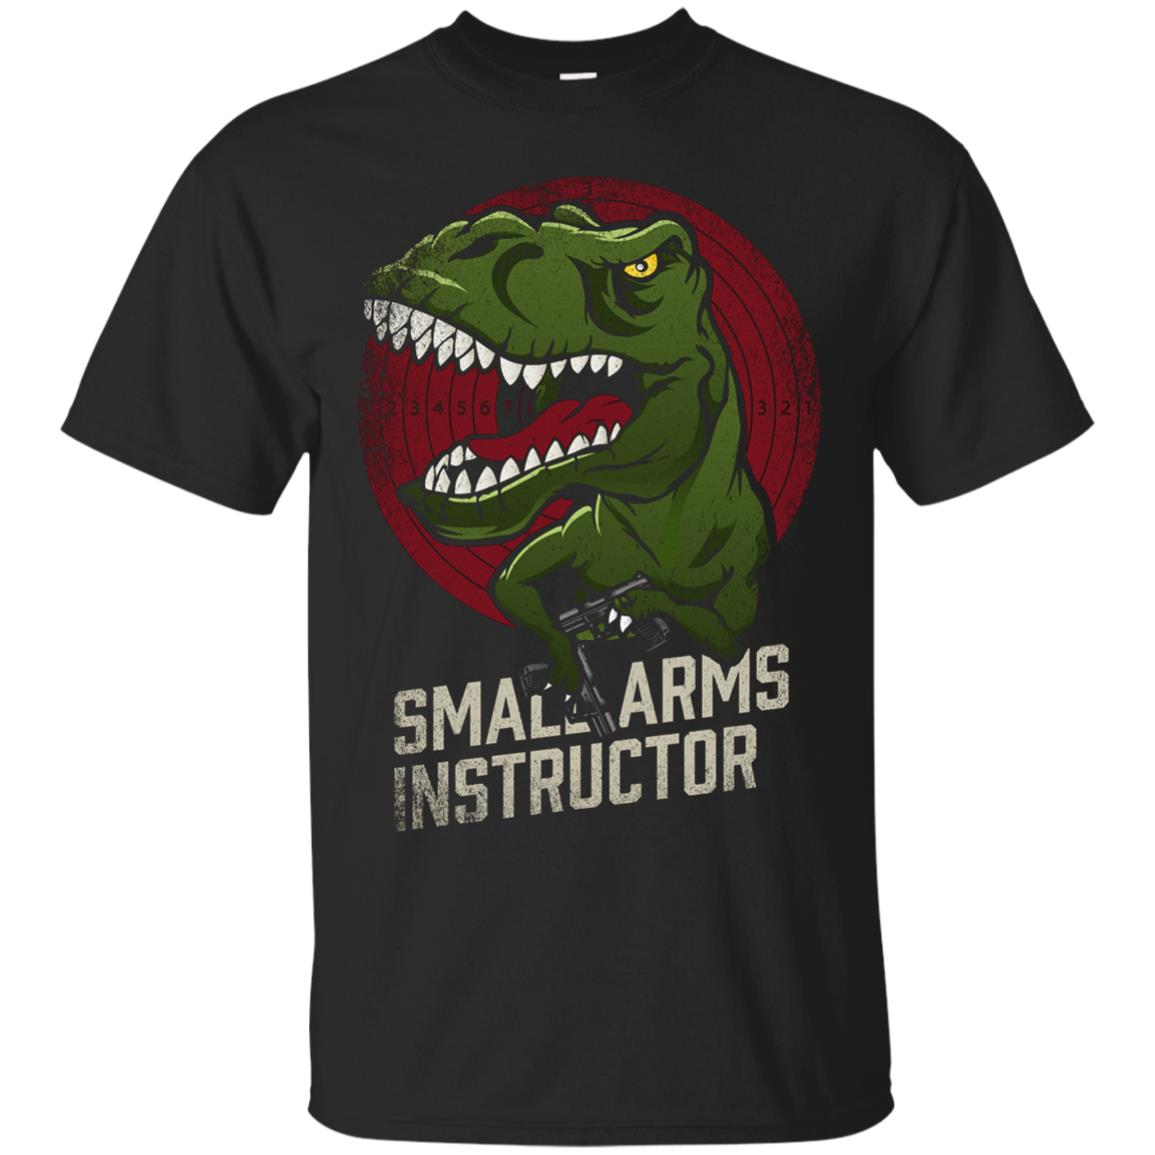 Small Arms Instructor